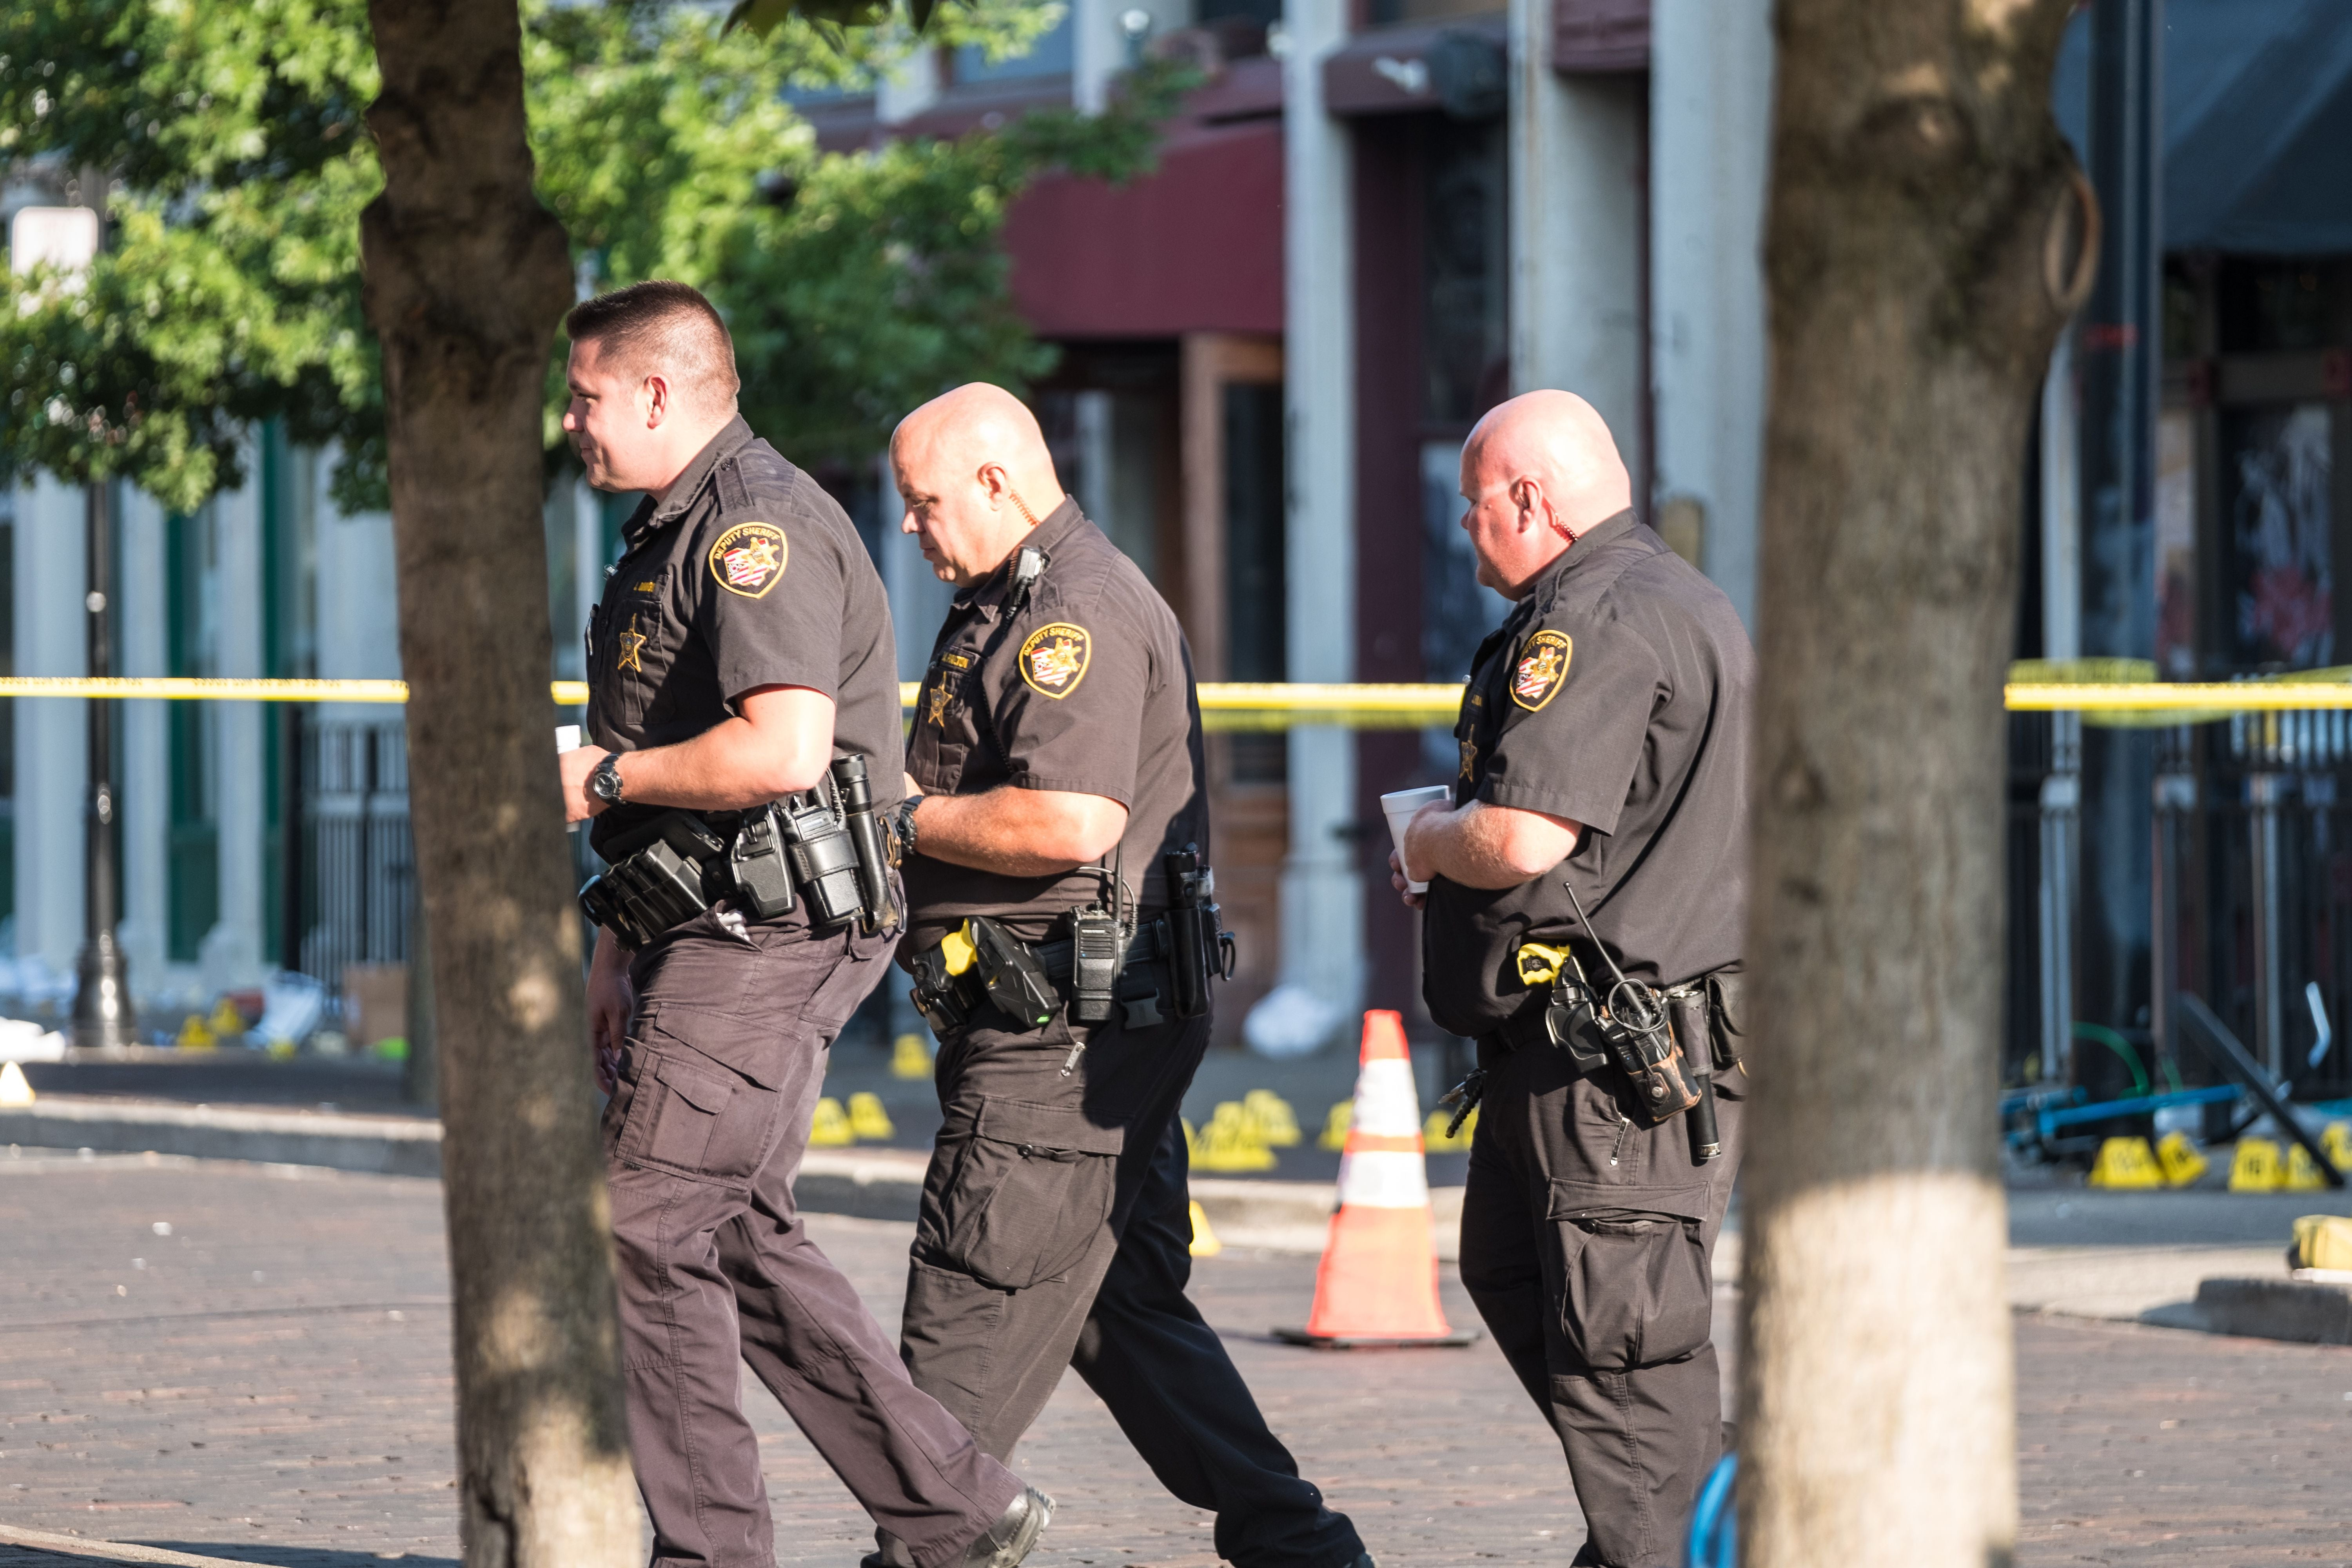 Two Cities, Two Mass Shootings In Less Than 24 Hours